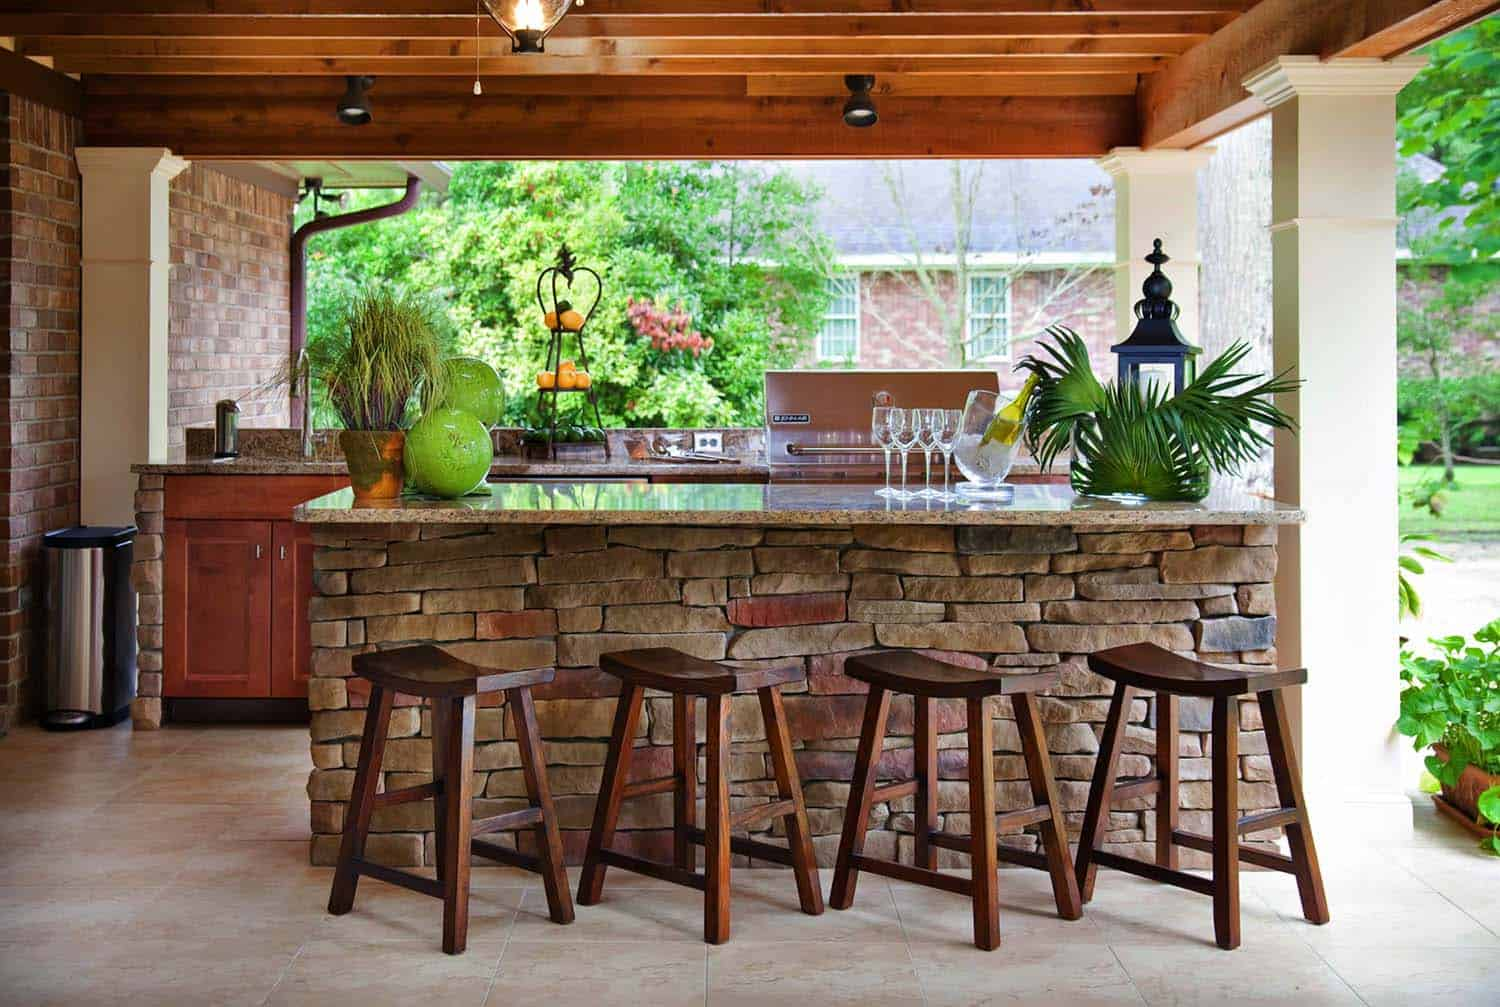 20+ Spectacular outdoor kitchens with bars for entertaining on Small Backyard Bar Ideas id=11285